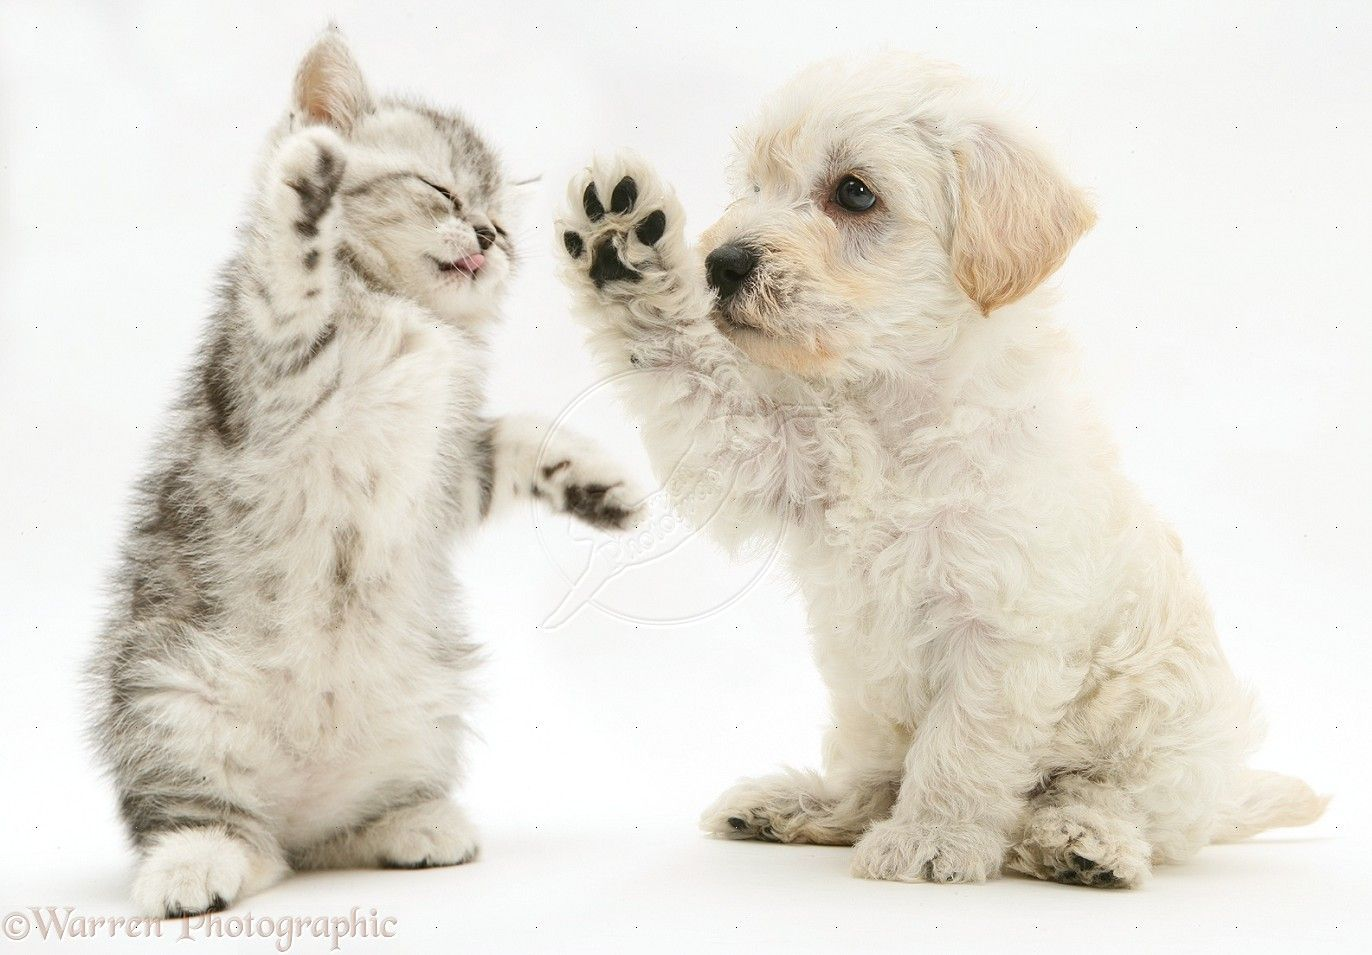 Puppies And Kittens Pictures Pets Woodle Puppy And Kitten Boxing Photo Wp16066 Cute Puppies And Kittens Cute Cats And Dogs Kittens And Puppies